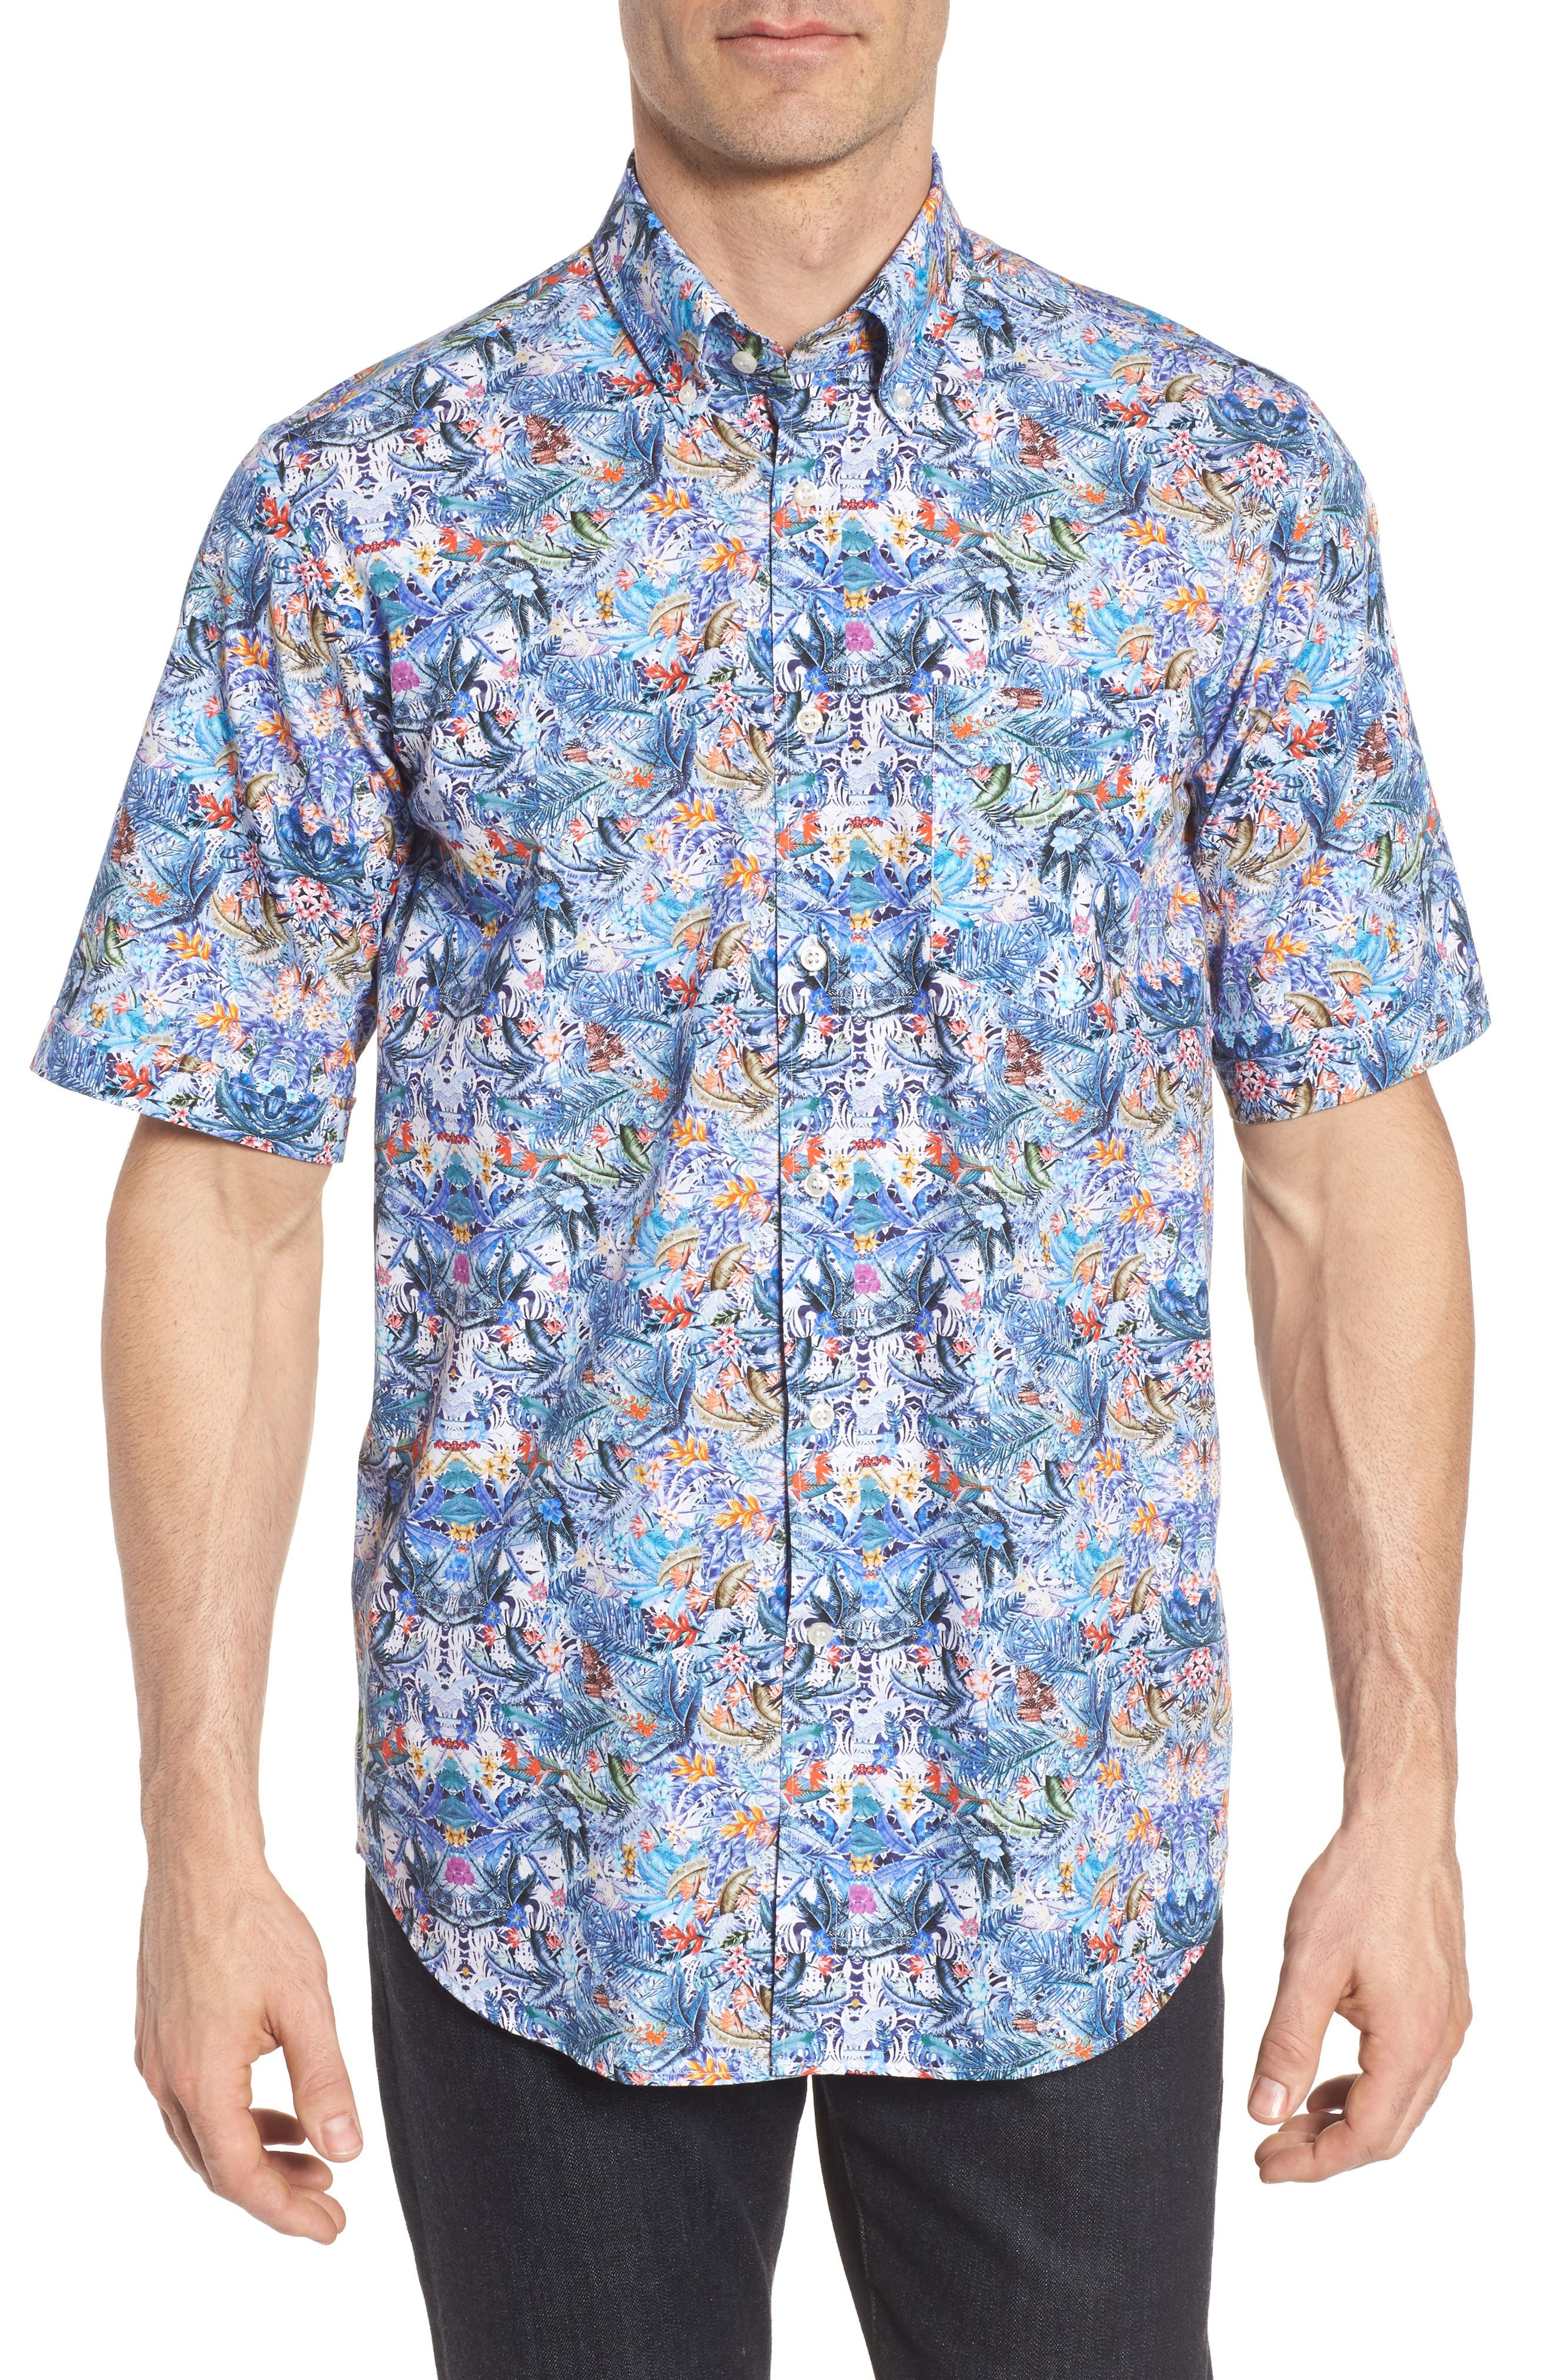 Paul&Shark Regular Fit Tropical Print Sport Shirt,                             Main thumbnail 1, color,                             101